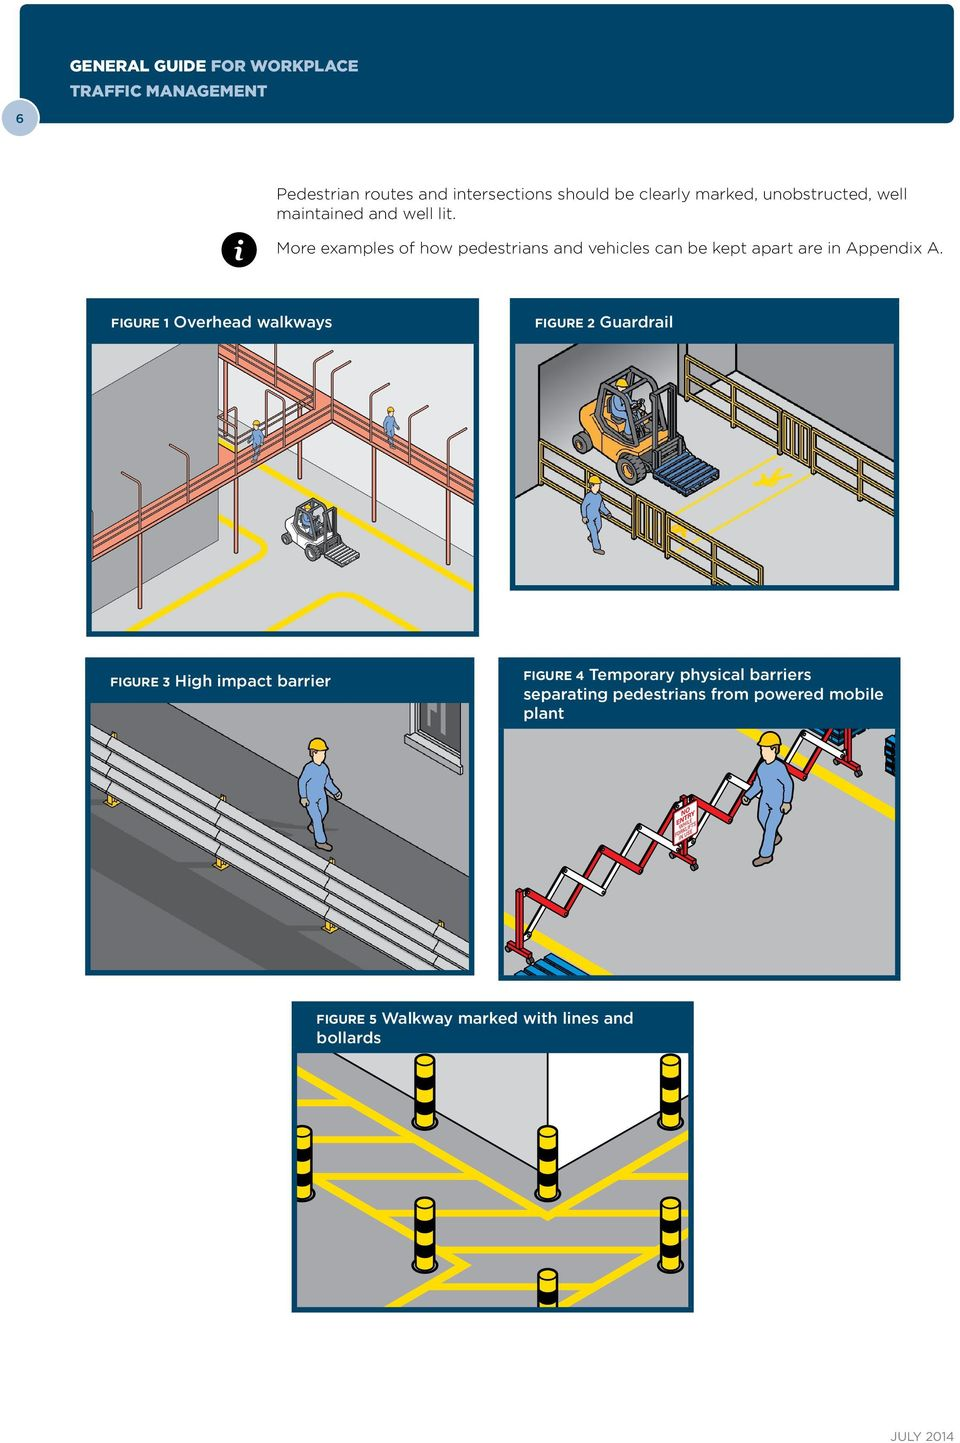 FIGURE 1 Overhead walkways FIGURE 2 Guardrail FIGURE 3 High impact barrier FIGURE 4 Temporary